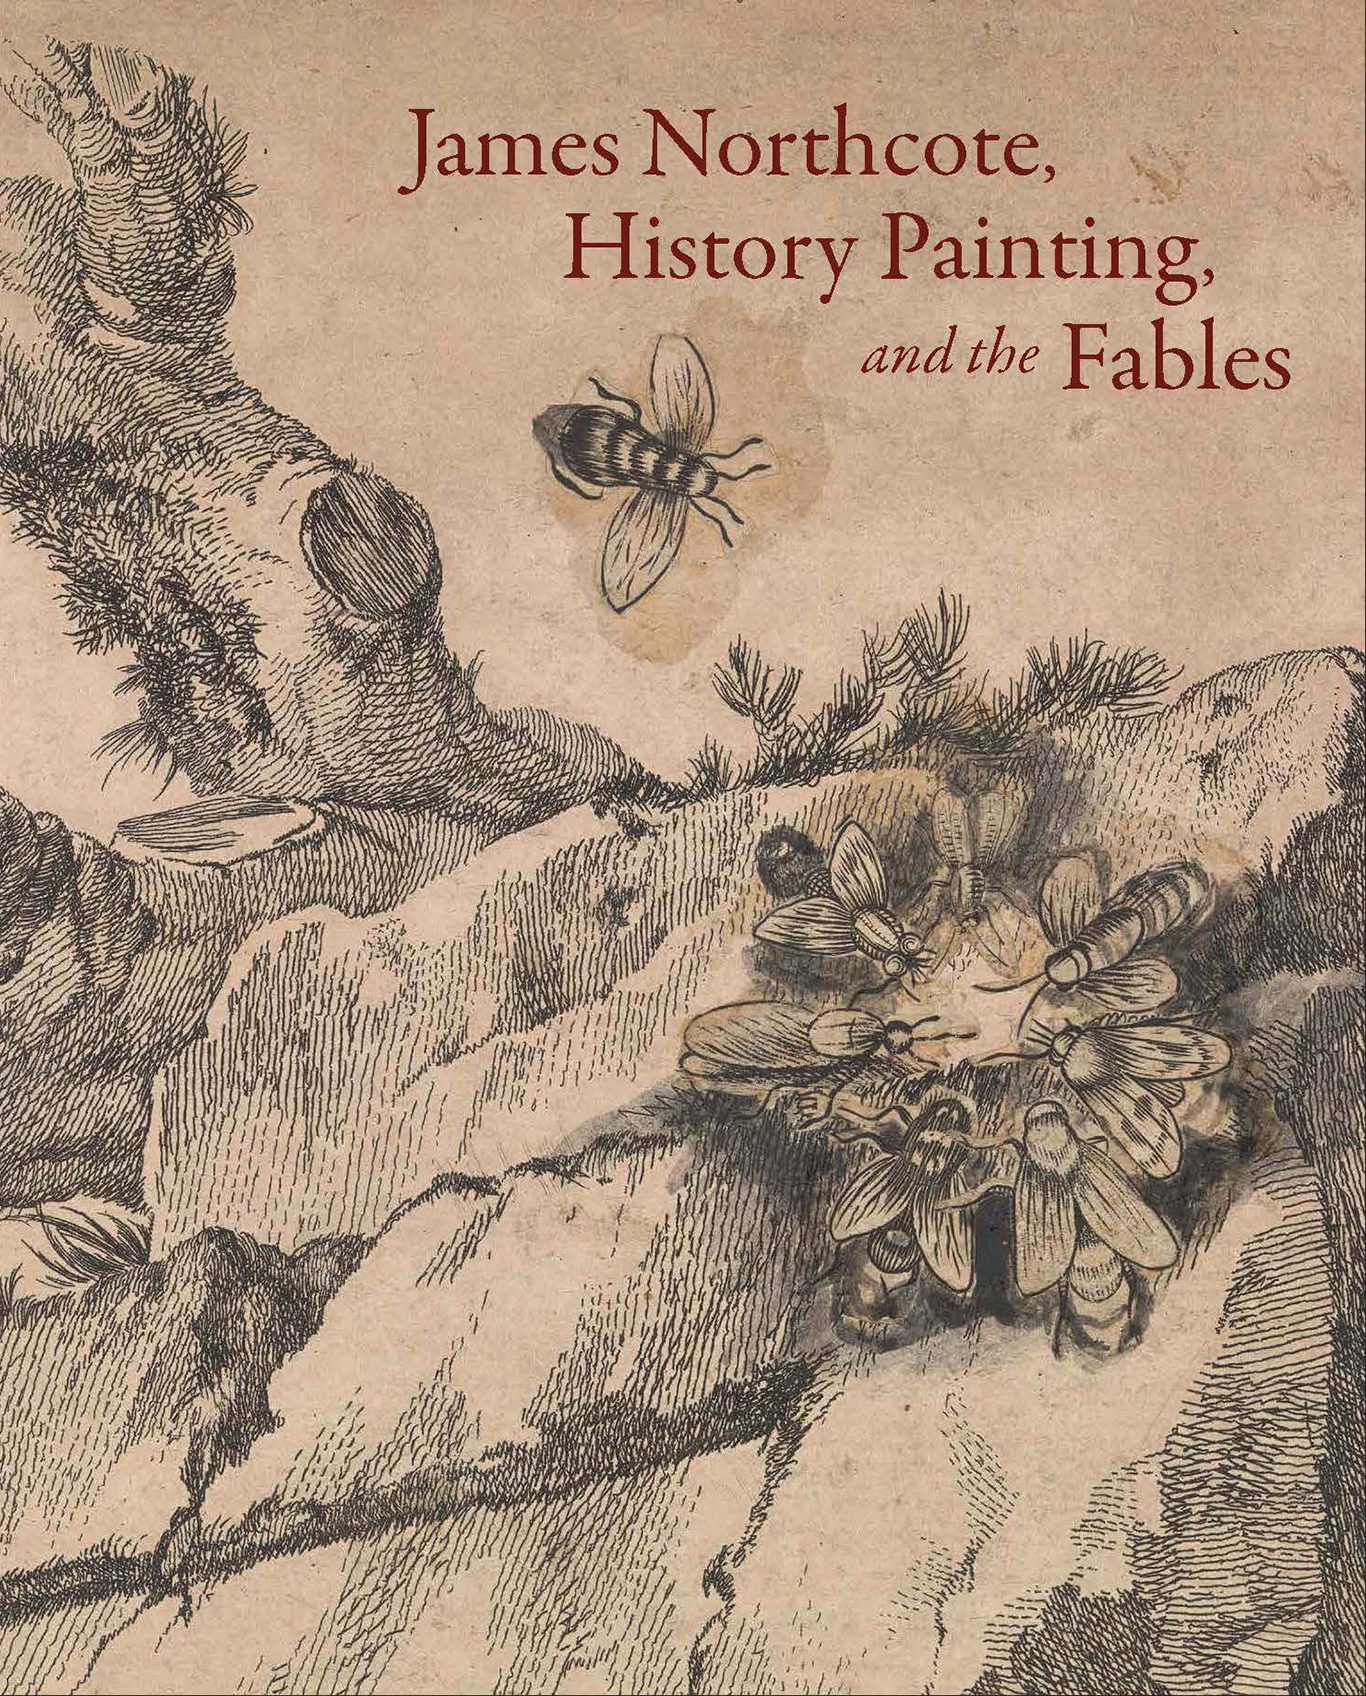 Cover, James Northcote, History Painting, and the Fables